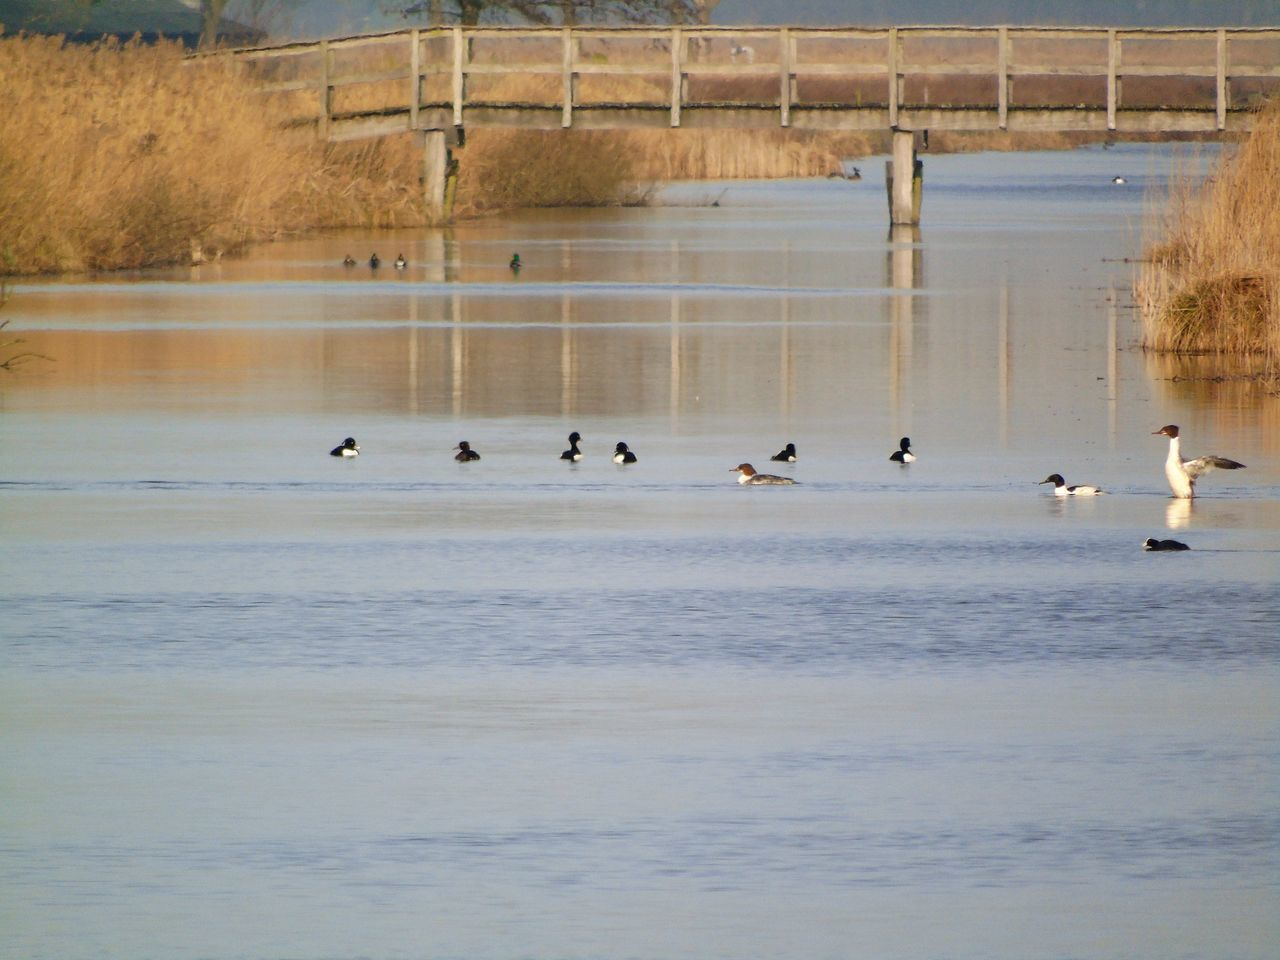 water, bird, animals in the wild, vertebrate, animal wildlife, animal themes, animal, group of animals, lake, nature, large group of animals, waterfront, day, beauty in nature, no people, swimming, beach, outdoors, water bird, floating on water, flock of birds